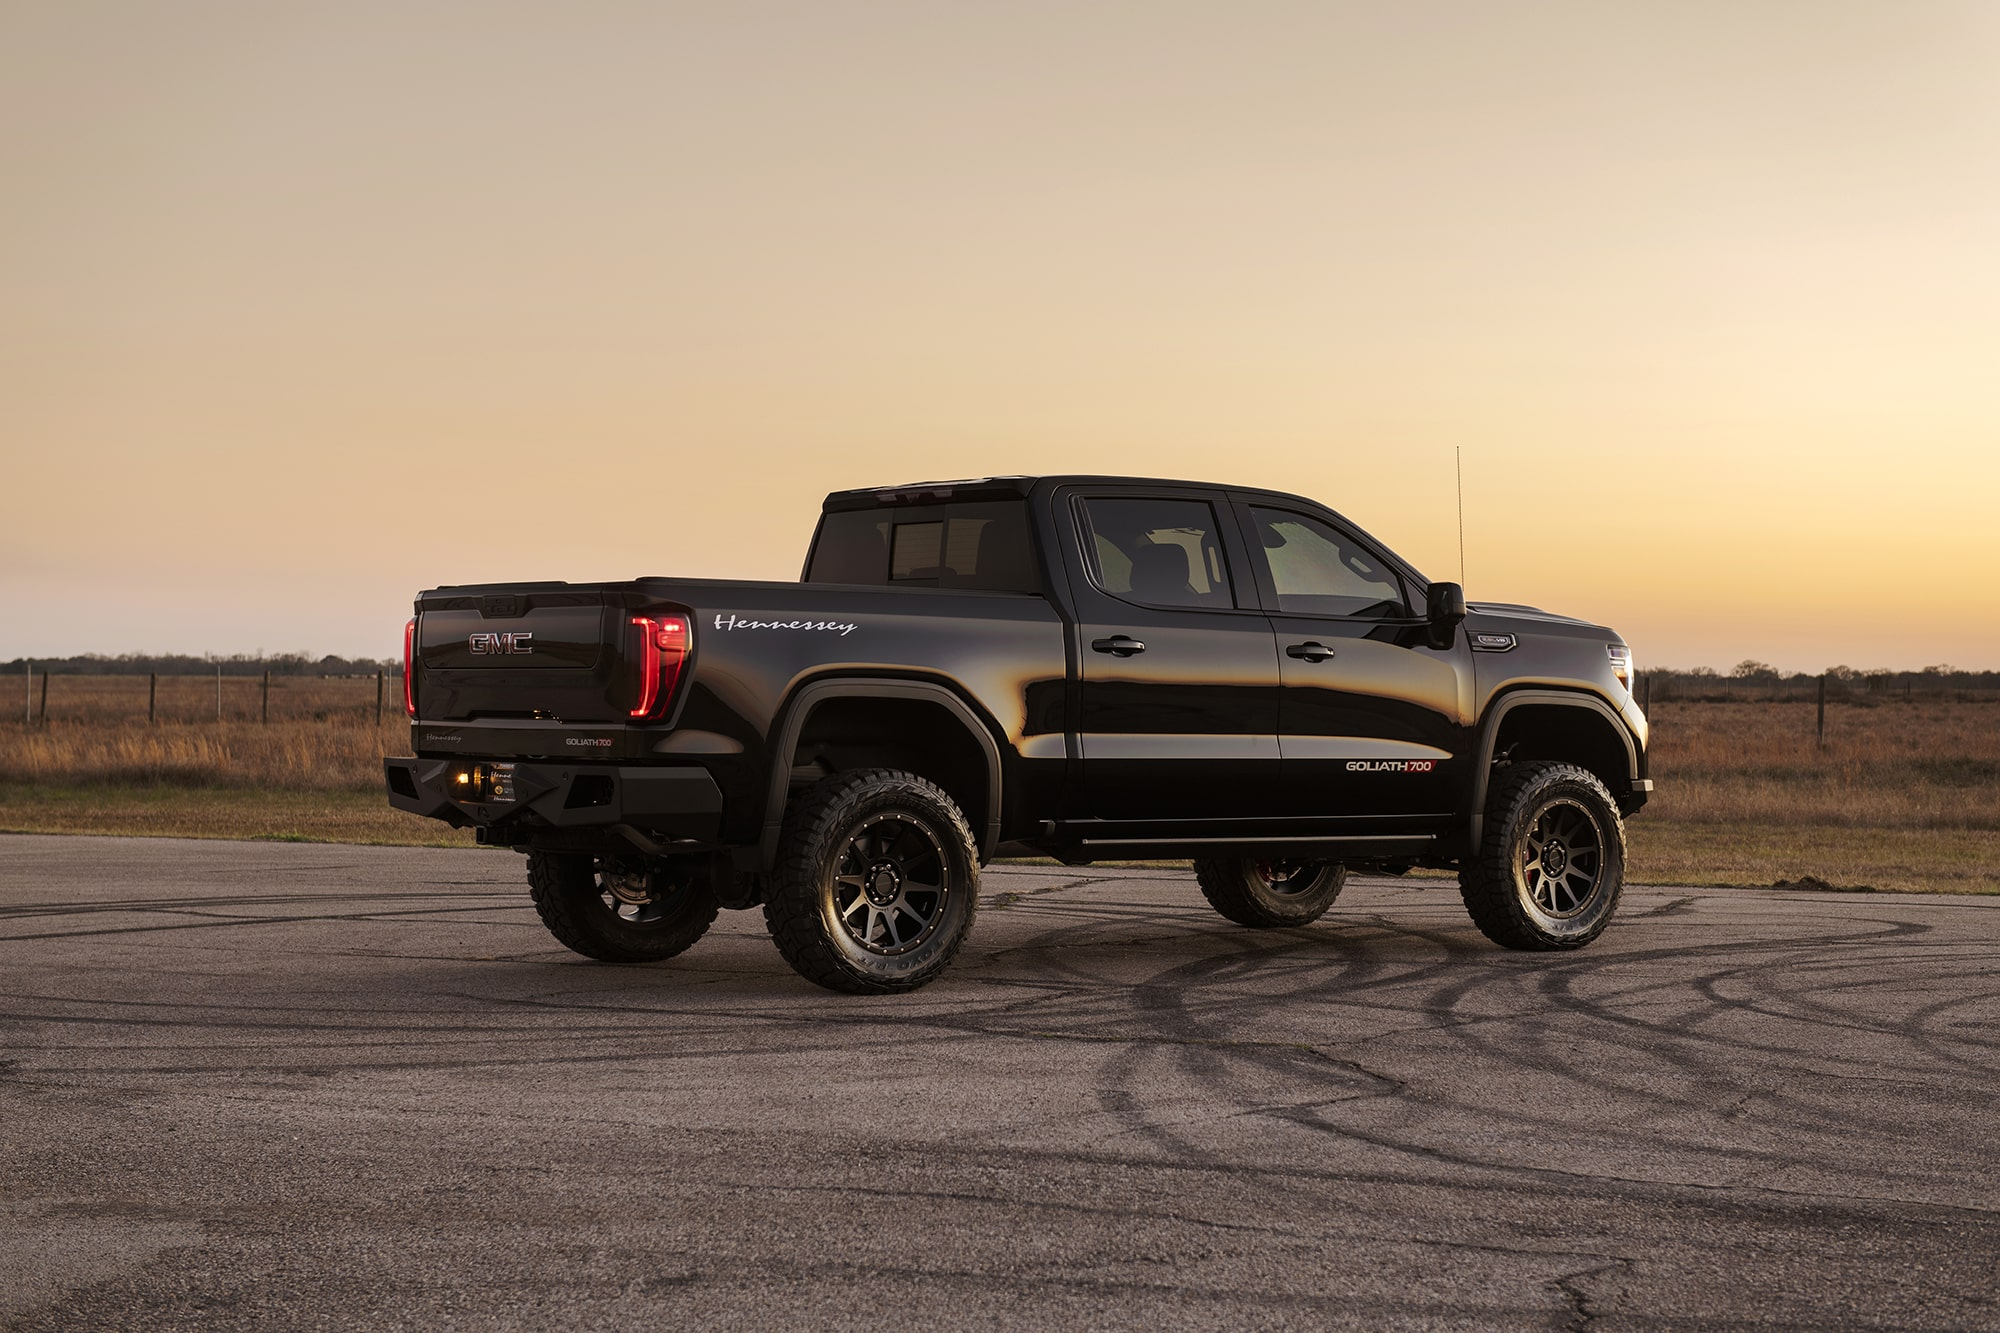 Hennessey GOLIATH 700 GMC Sierra Truck for sale